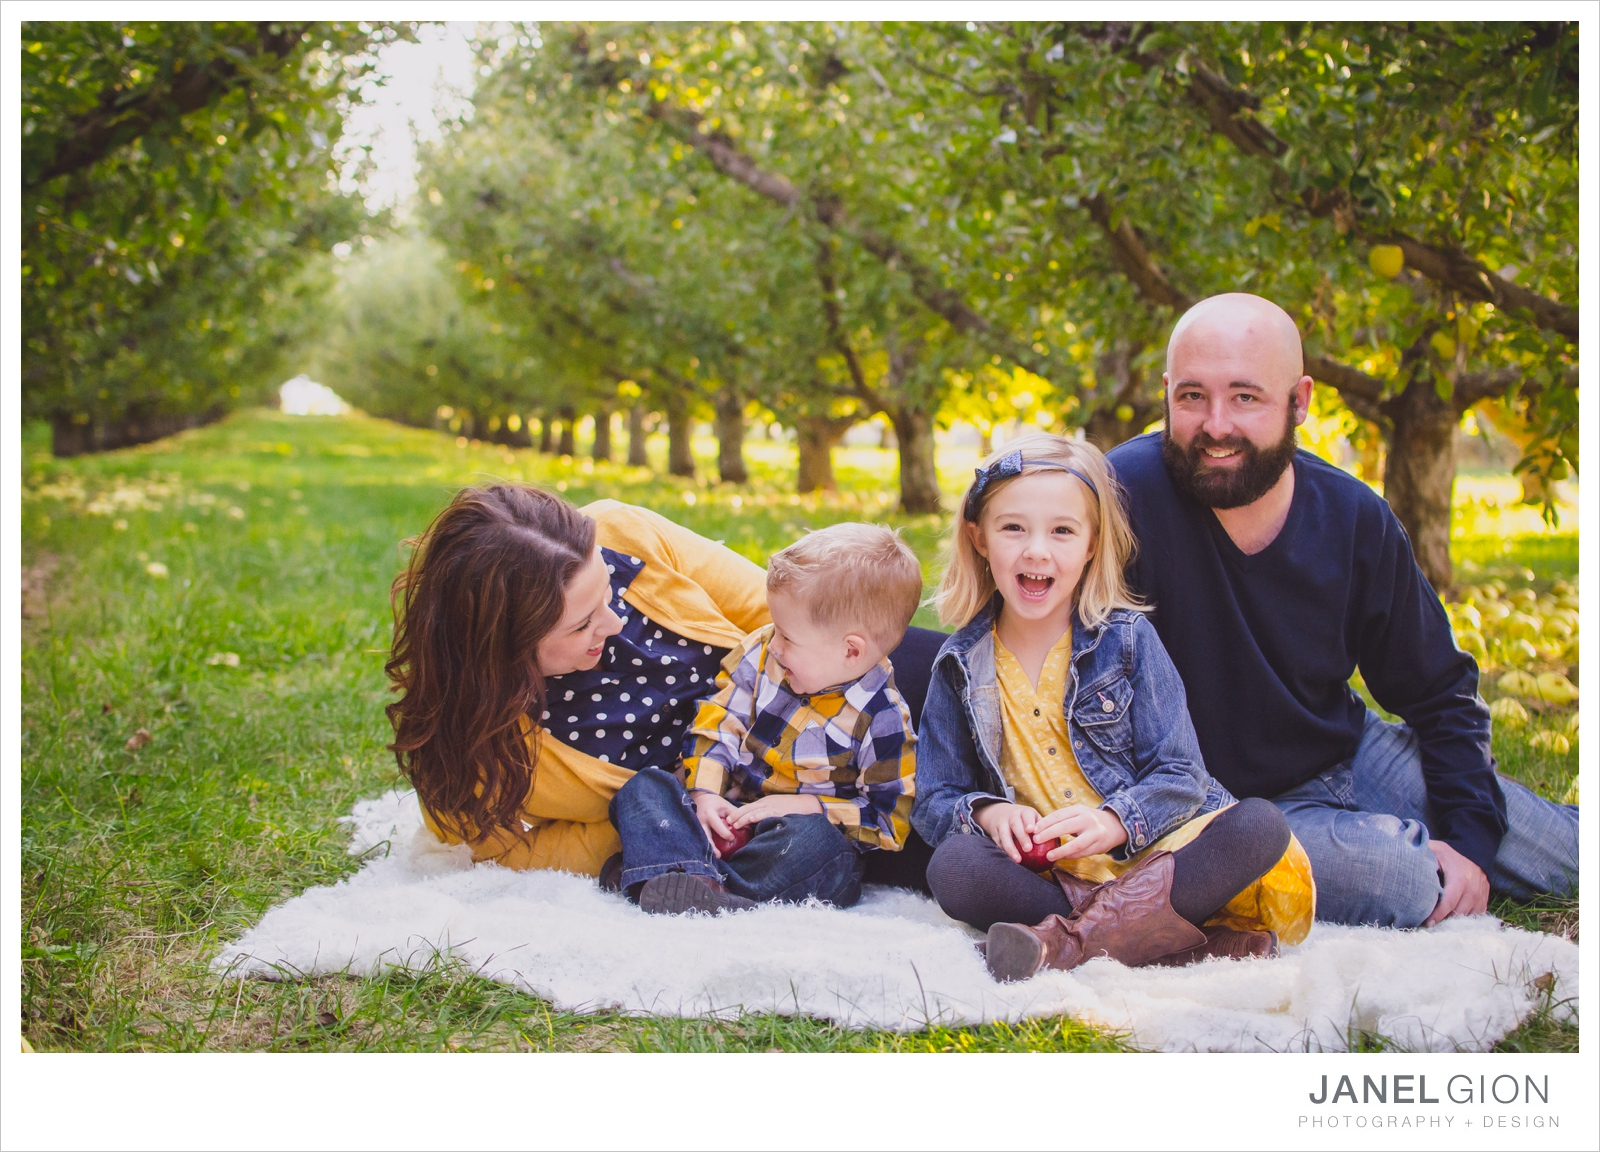 North-Idaho-Family-Children-Photographer-Year-in-Review-Contest-2013-Lifestyle-Family-Portraits-by-Janel-Gion-Photography_0049.jpg